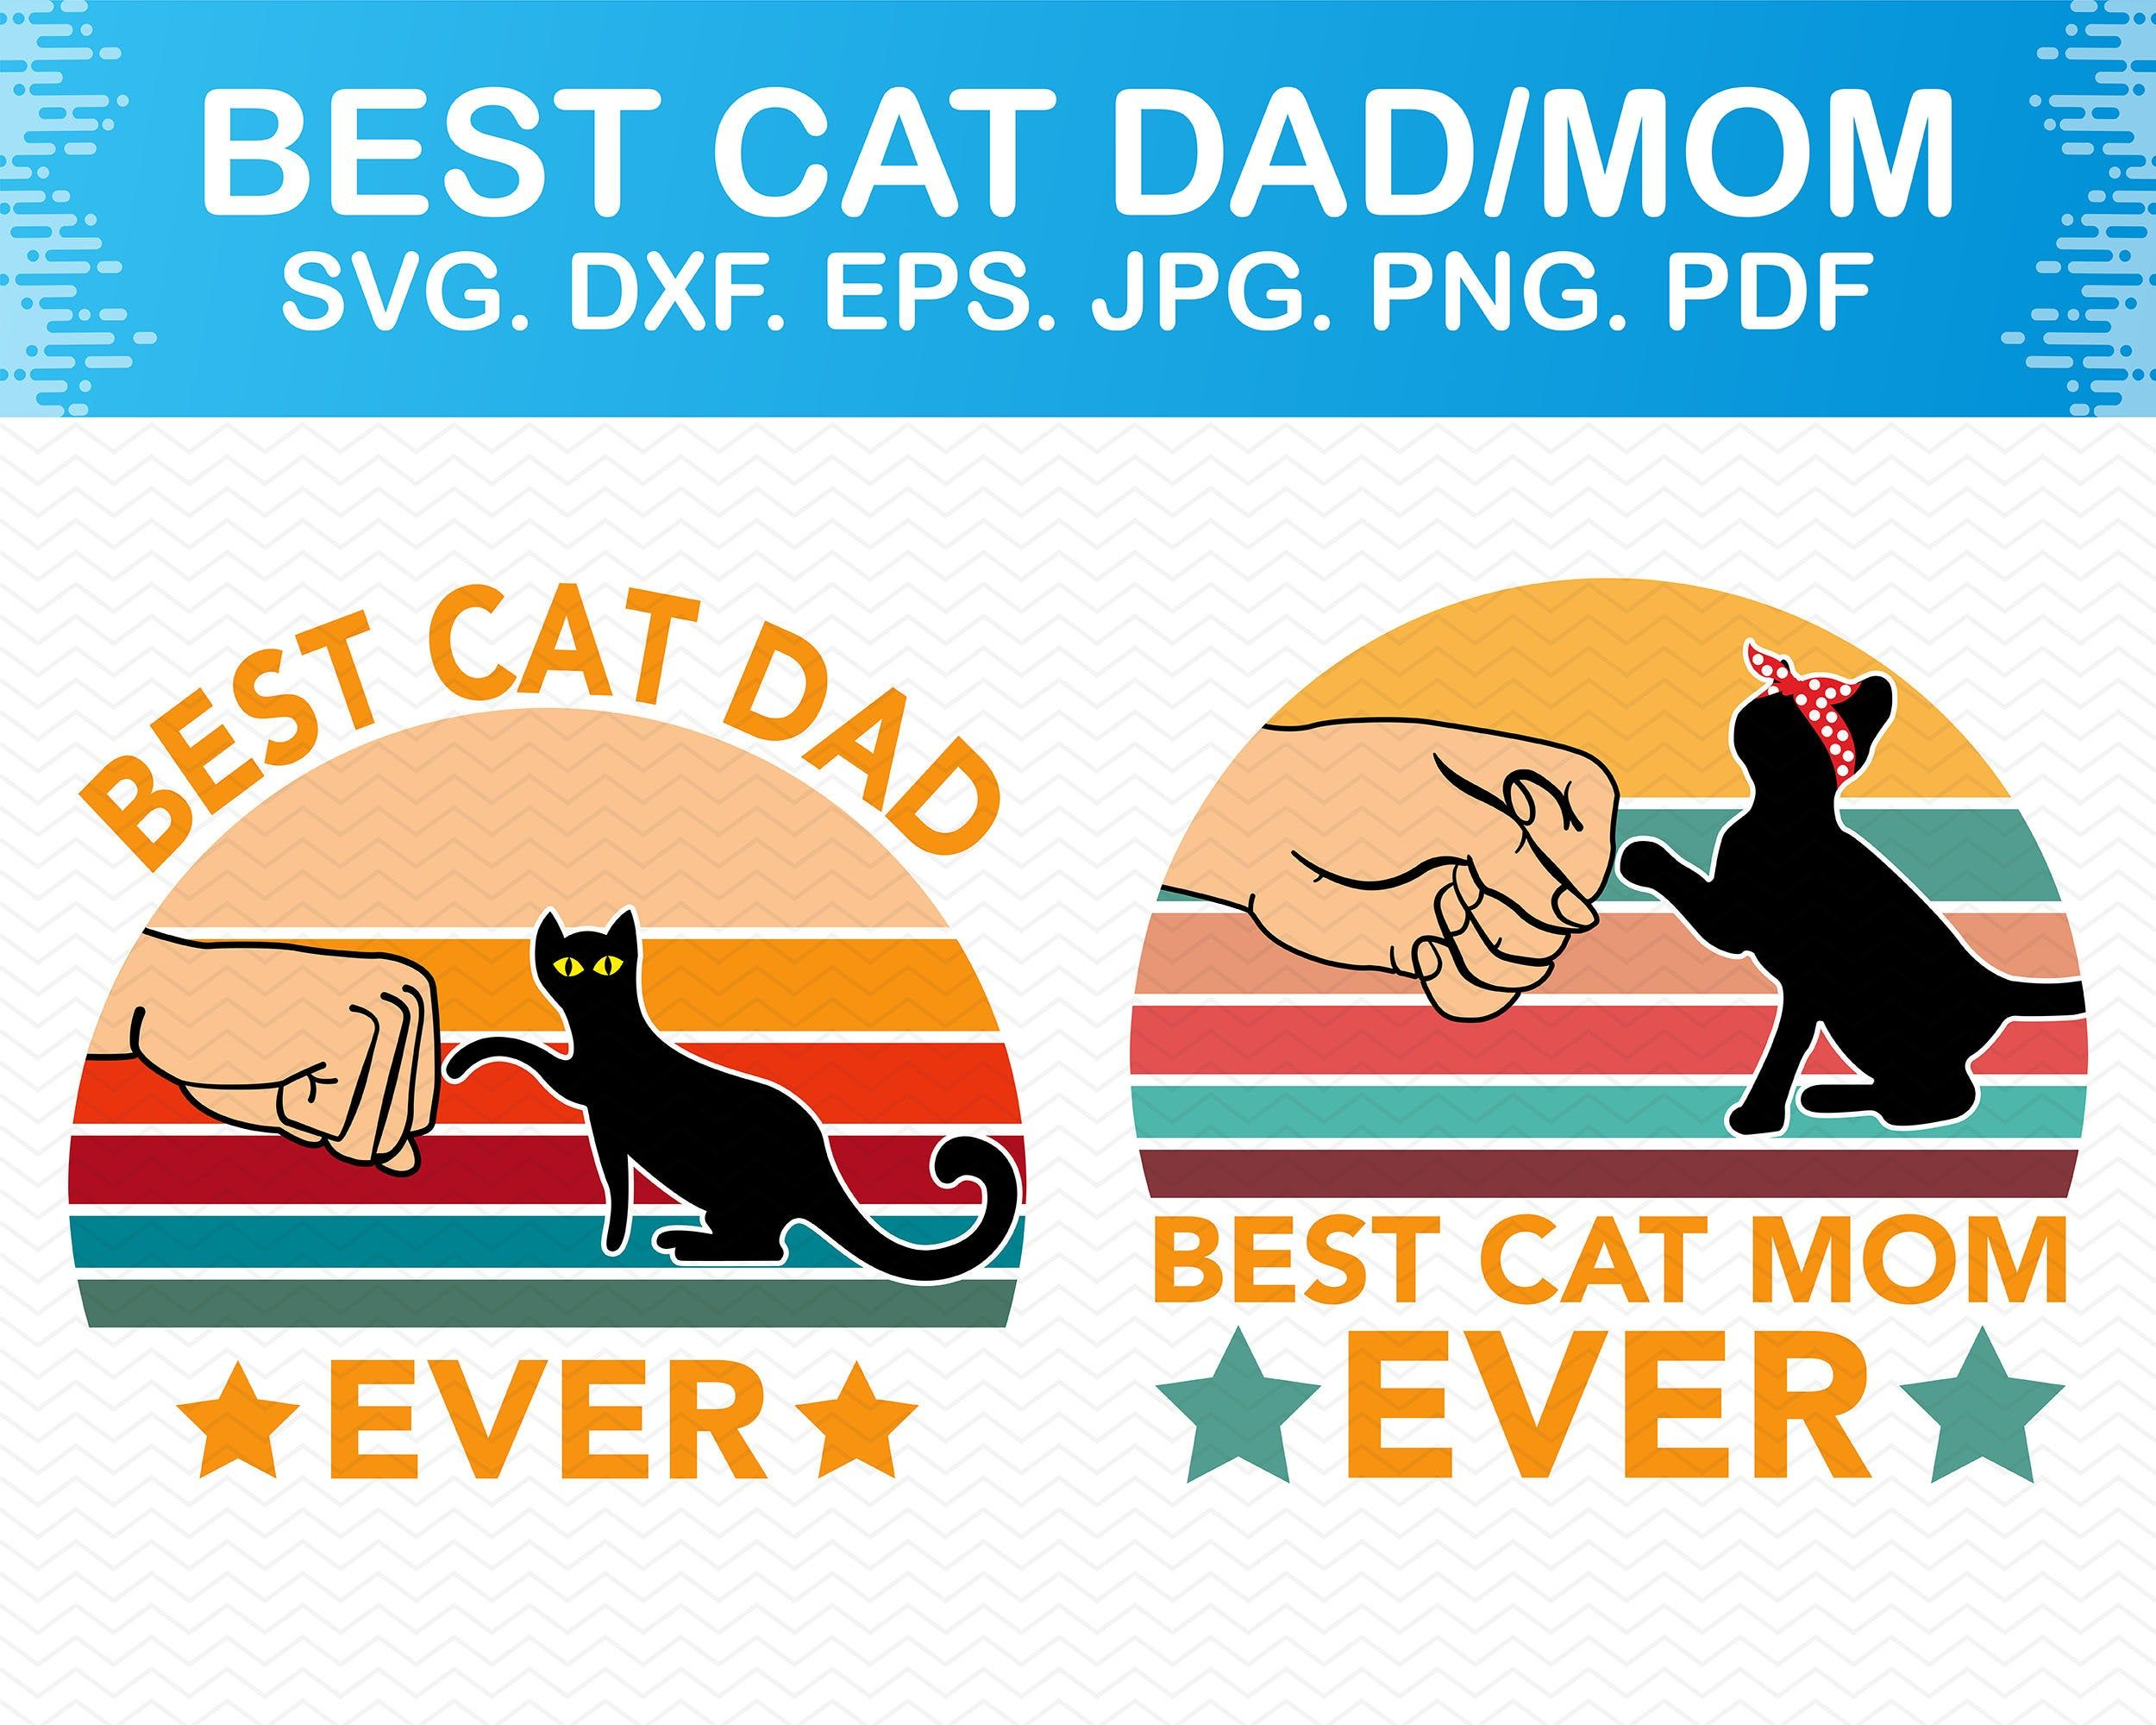 jpg dad cut file pdf dxf eps baby clipart png dad mom Dad family SVG family svg files for cricut or silhouette